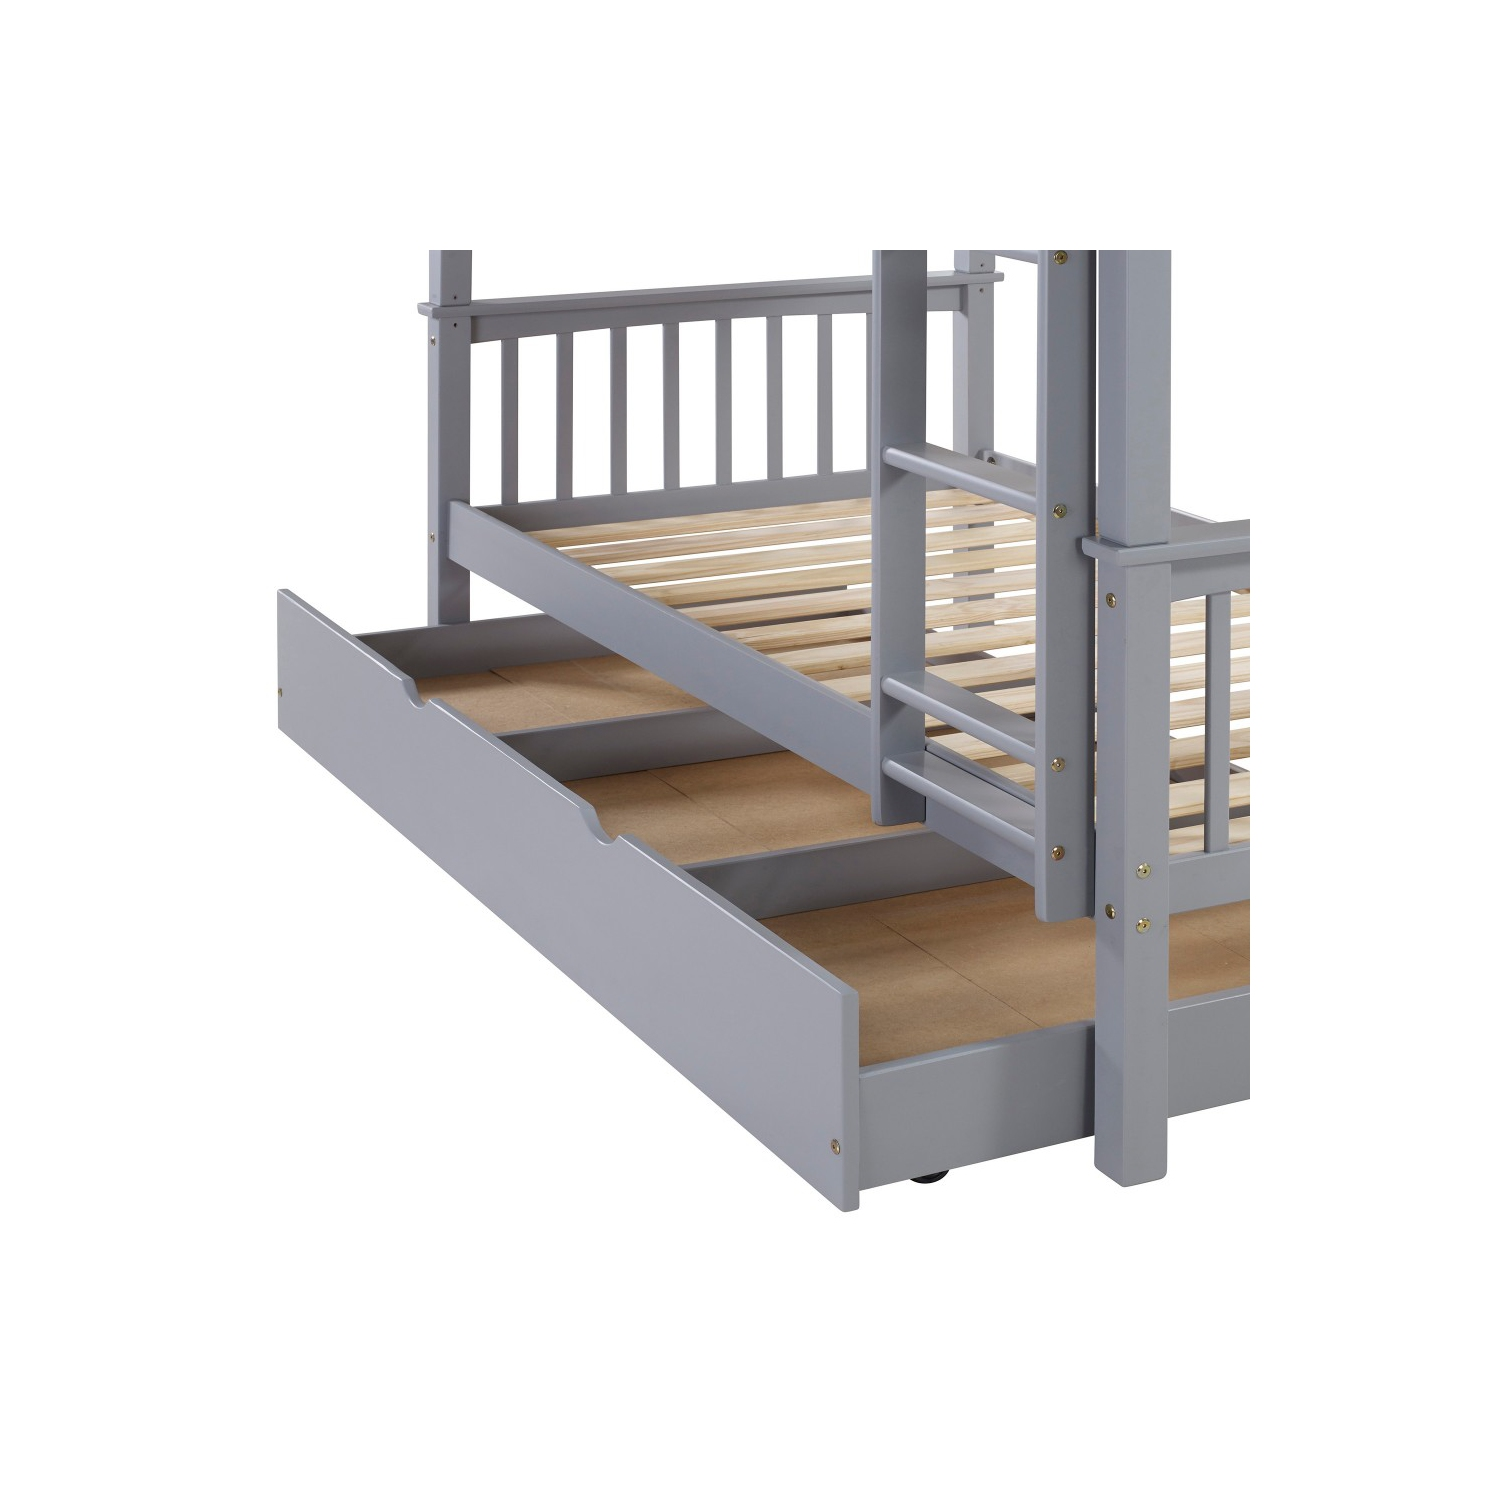 We furniture kids durable solid wood twin trundle bed grey online only